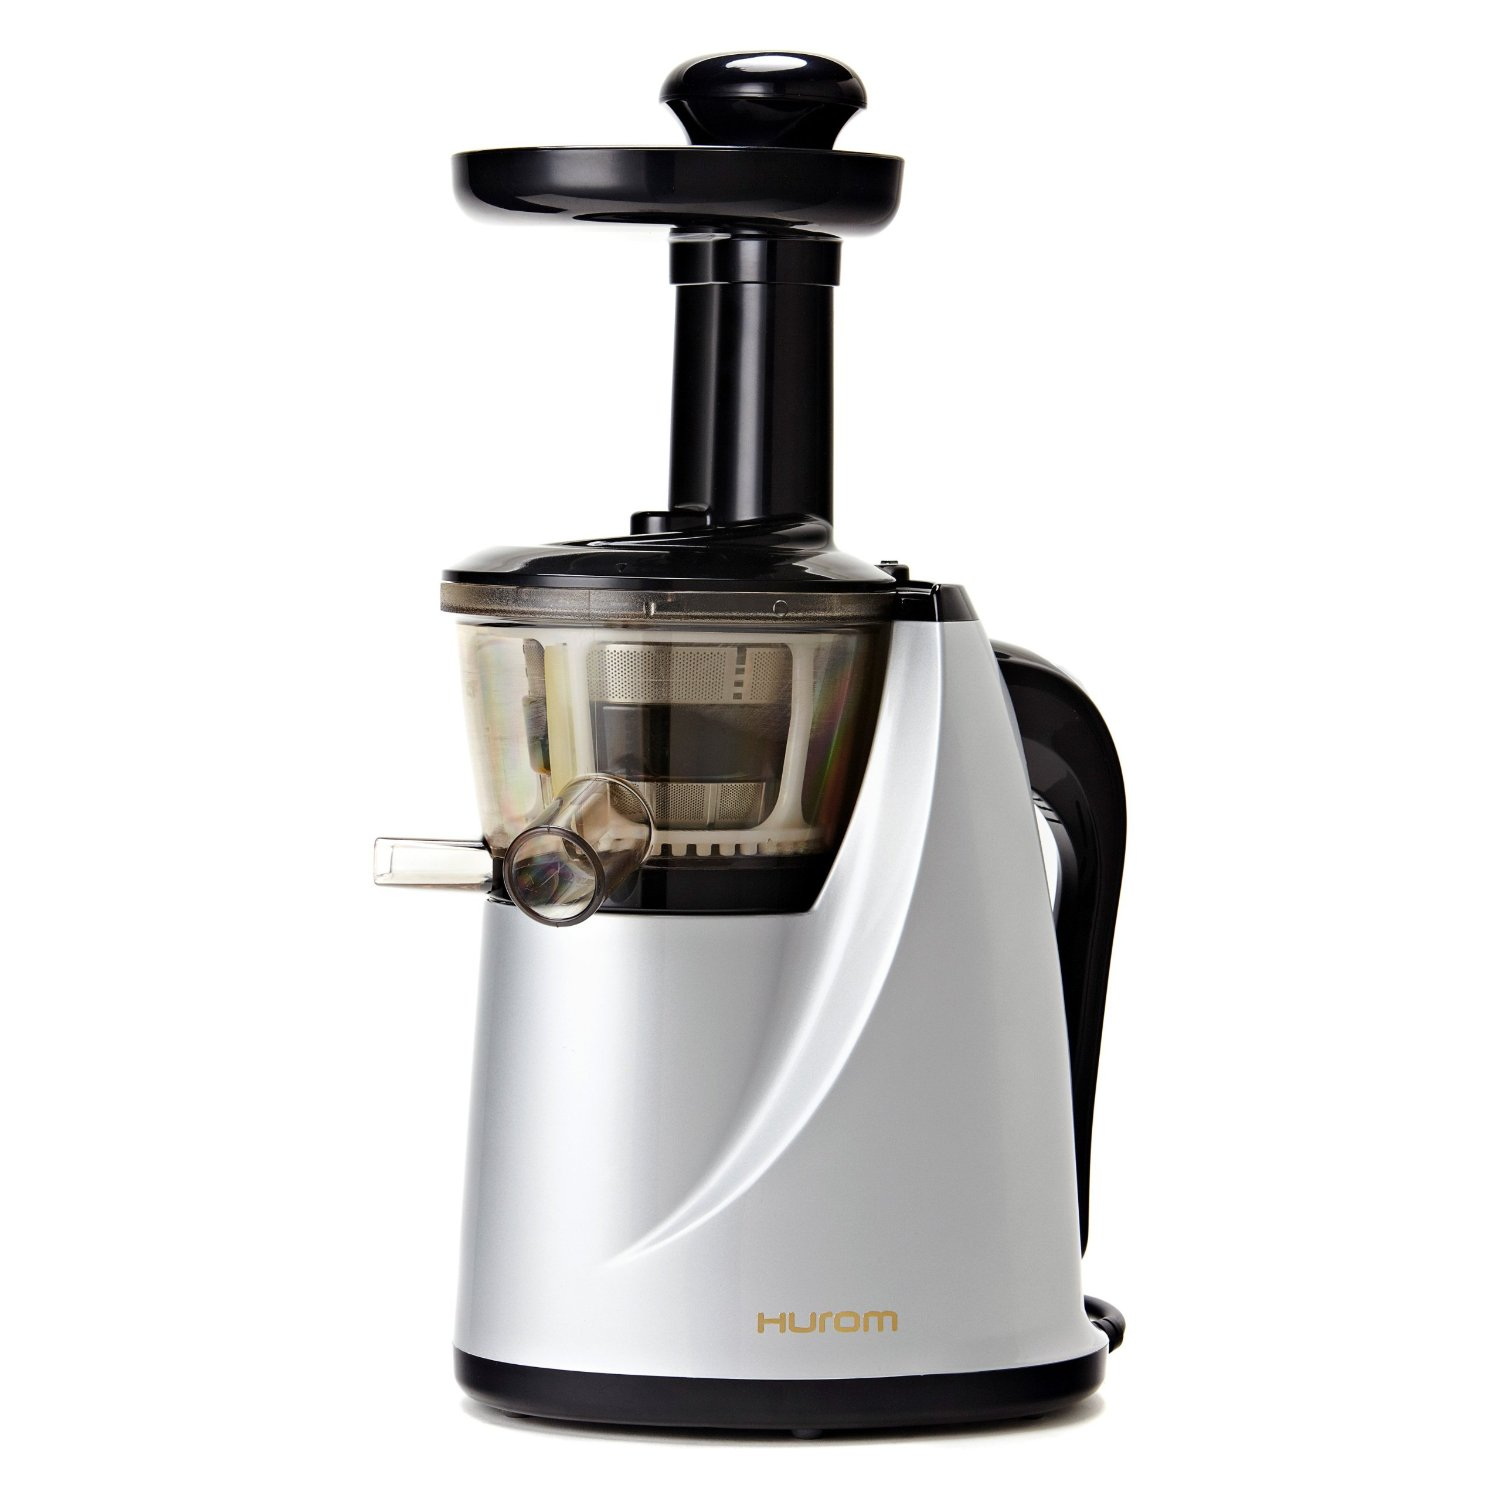 Hurom Slow Juicer Hu 300 Review : Hurom HU-100 Masticating Slow Juicer Review - Best Cold Press Juicers